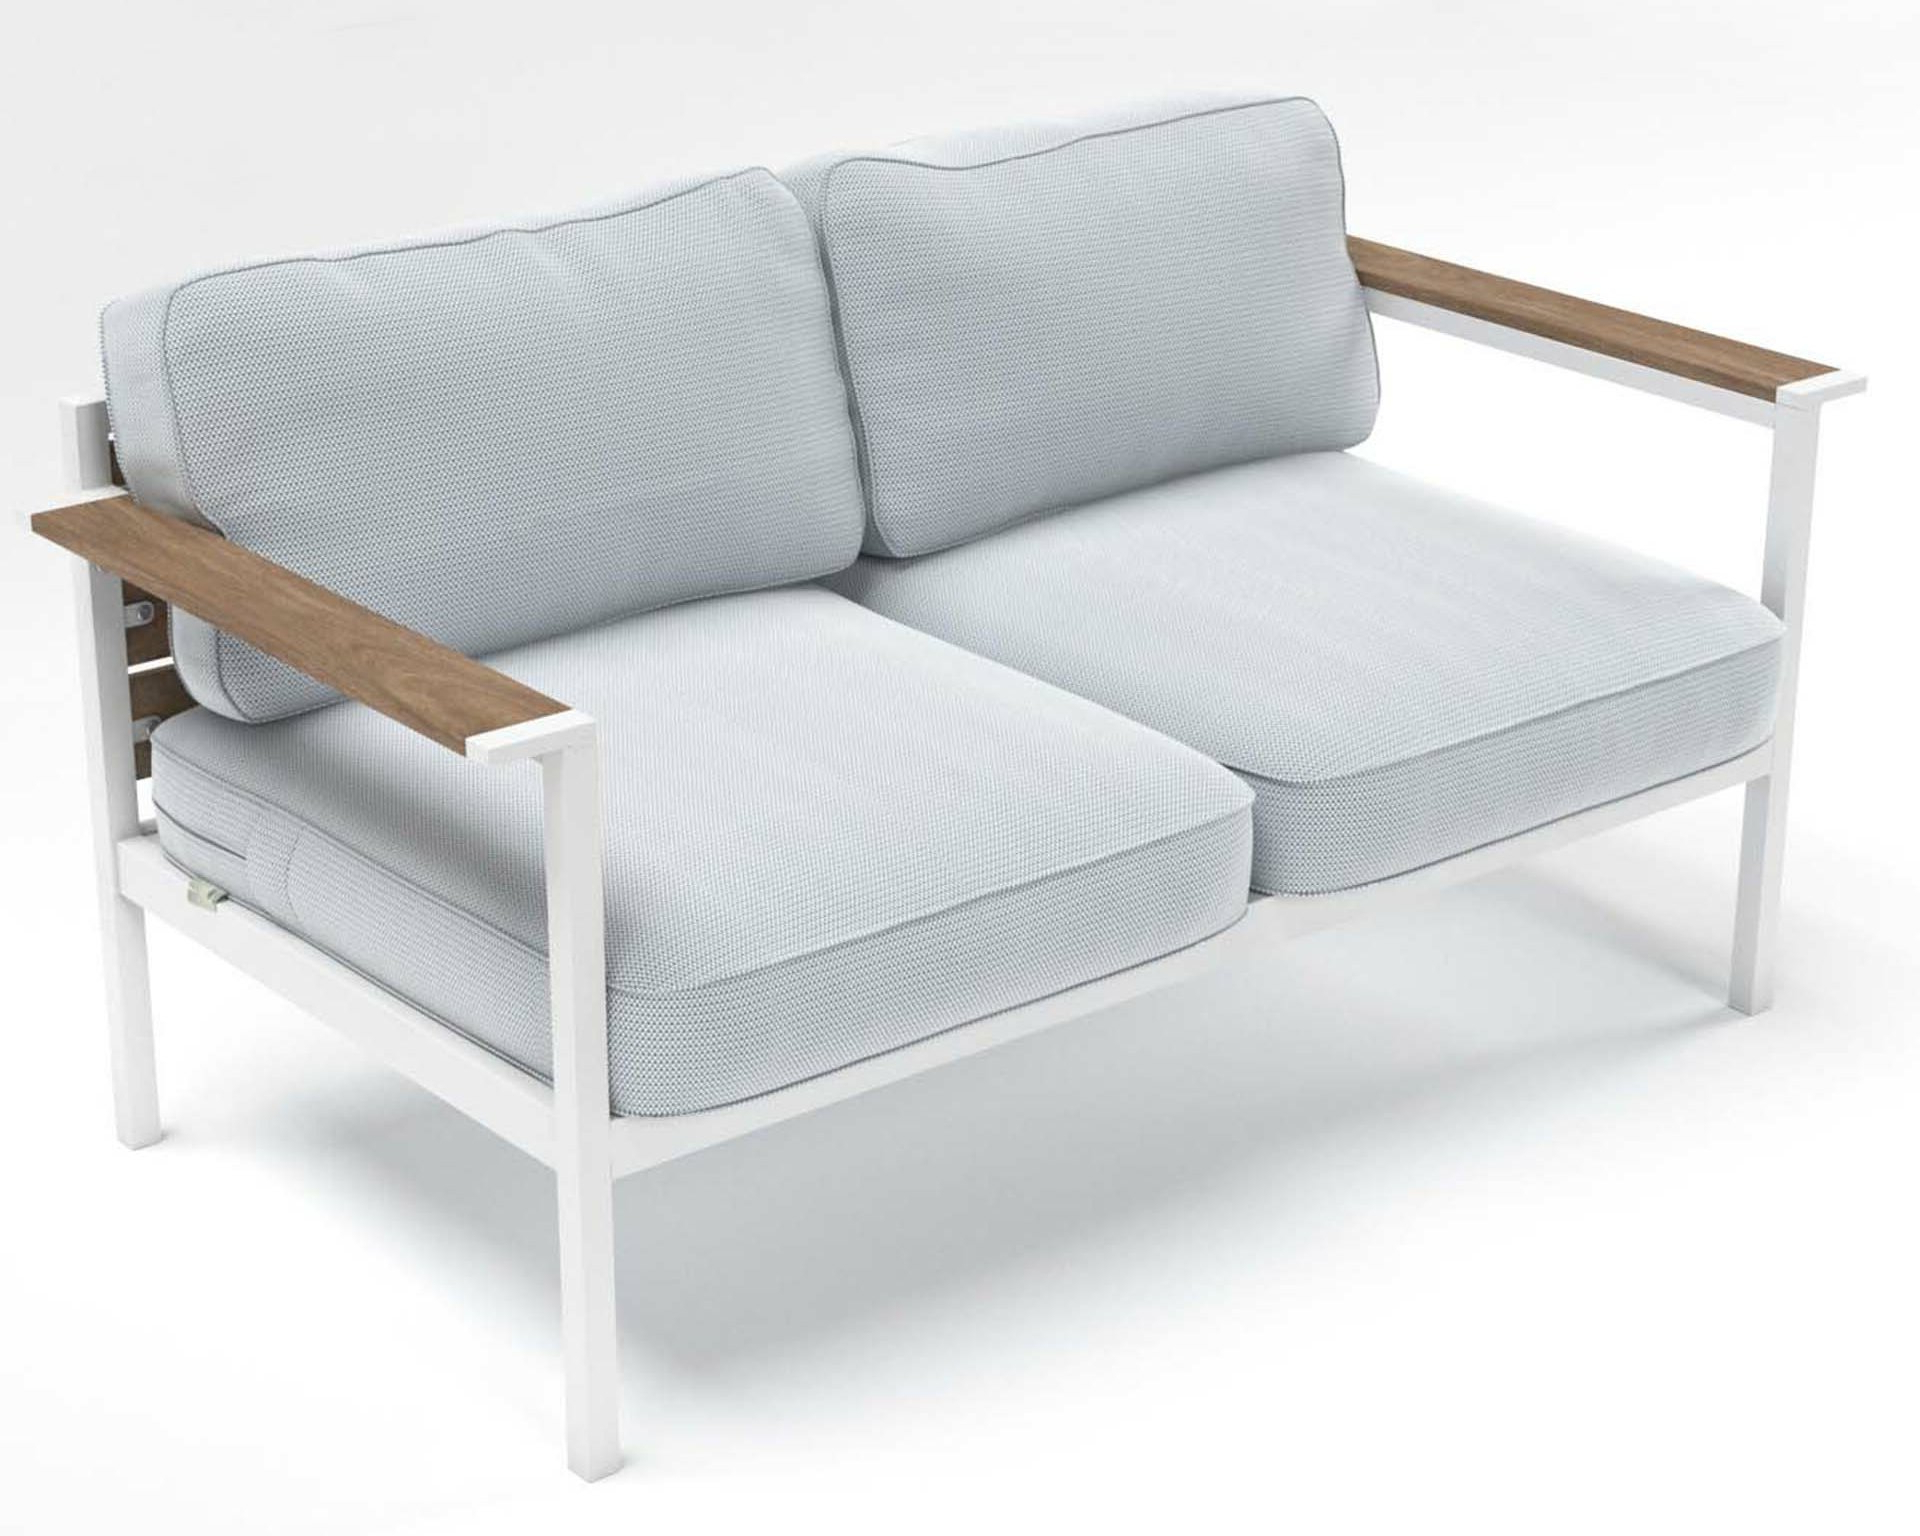 Fashionable Outdoor Steel And Wood Framed Loveseat With Cushions Regarding Bristol Loveseats With Cushions (View 9 of 20)